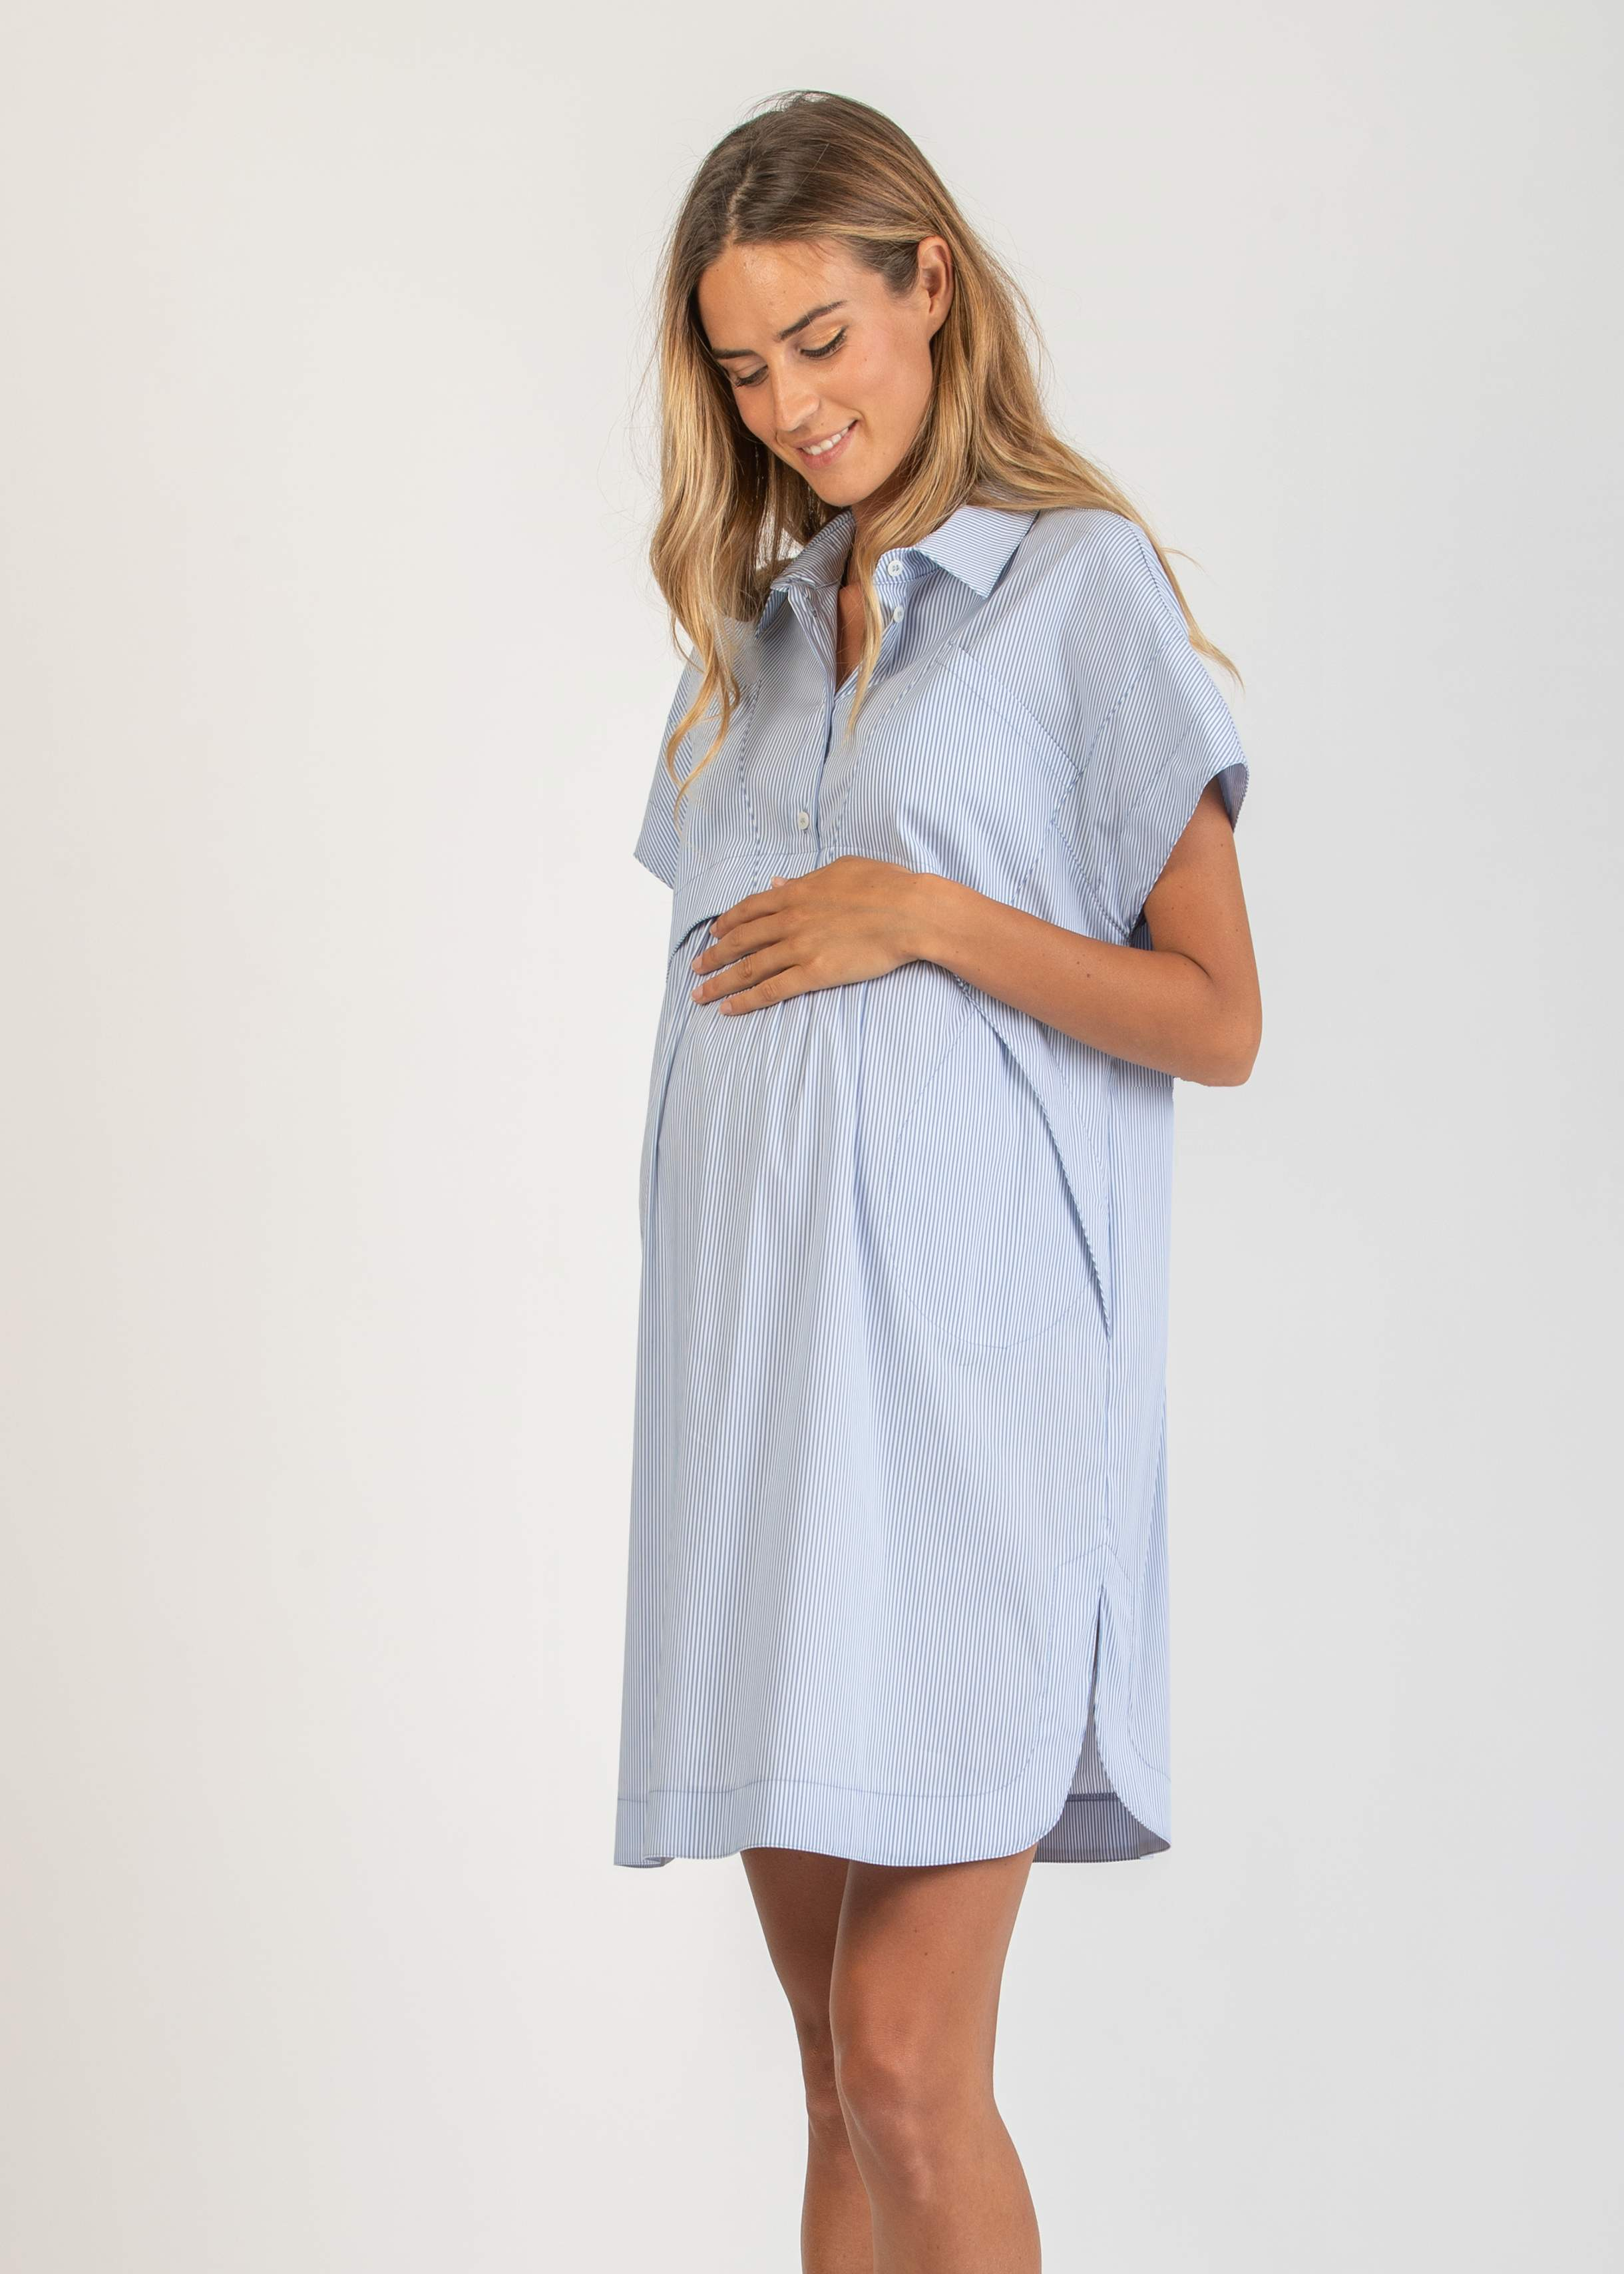 742aceb7945 Nursing - Loose-Fitting Maternity Dress with Front Pockets   Attesa ...